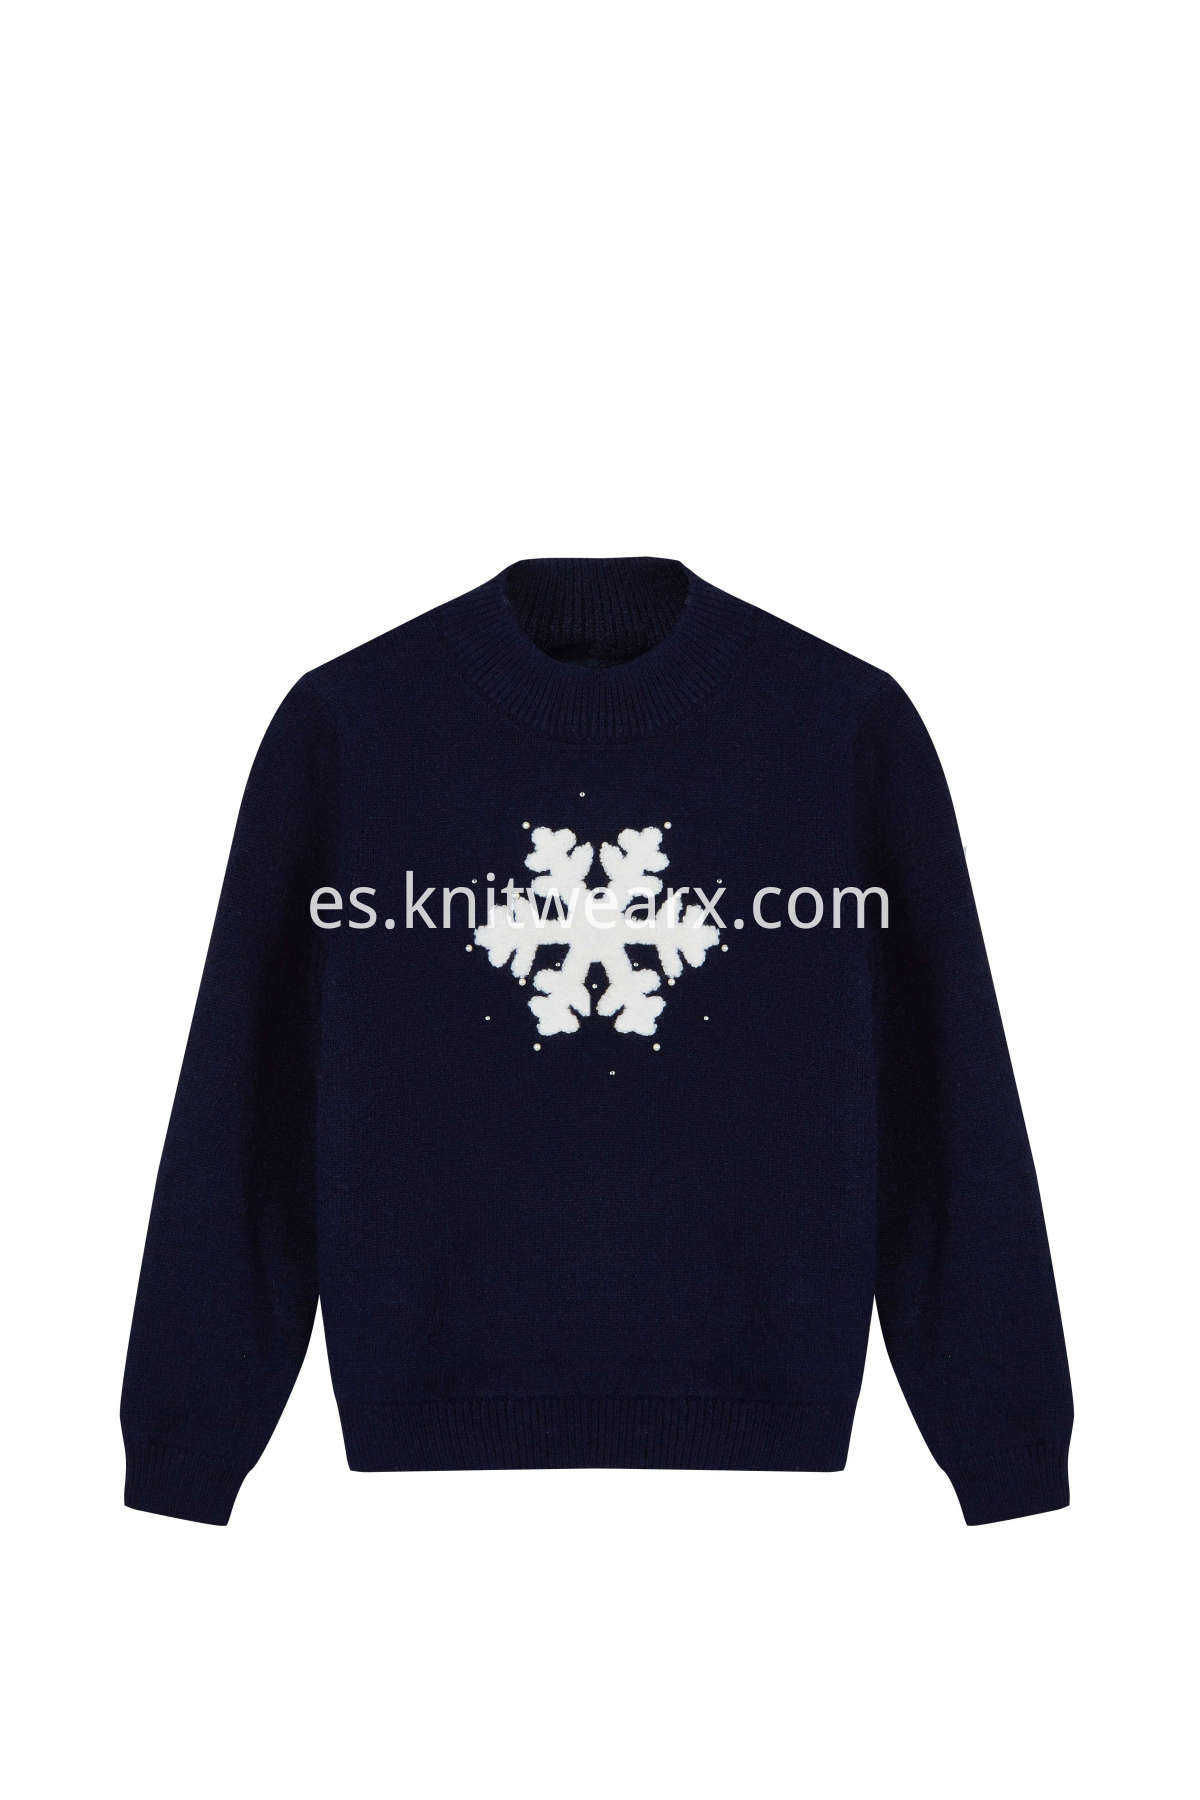 Girl's Nice Snowflake Sweater Long Sleeve Pullover Top